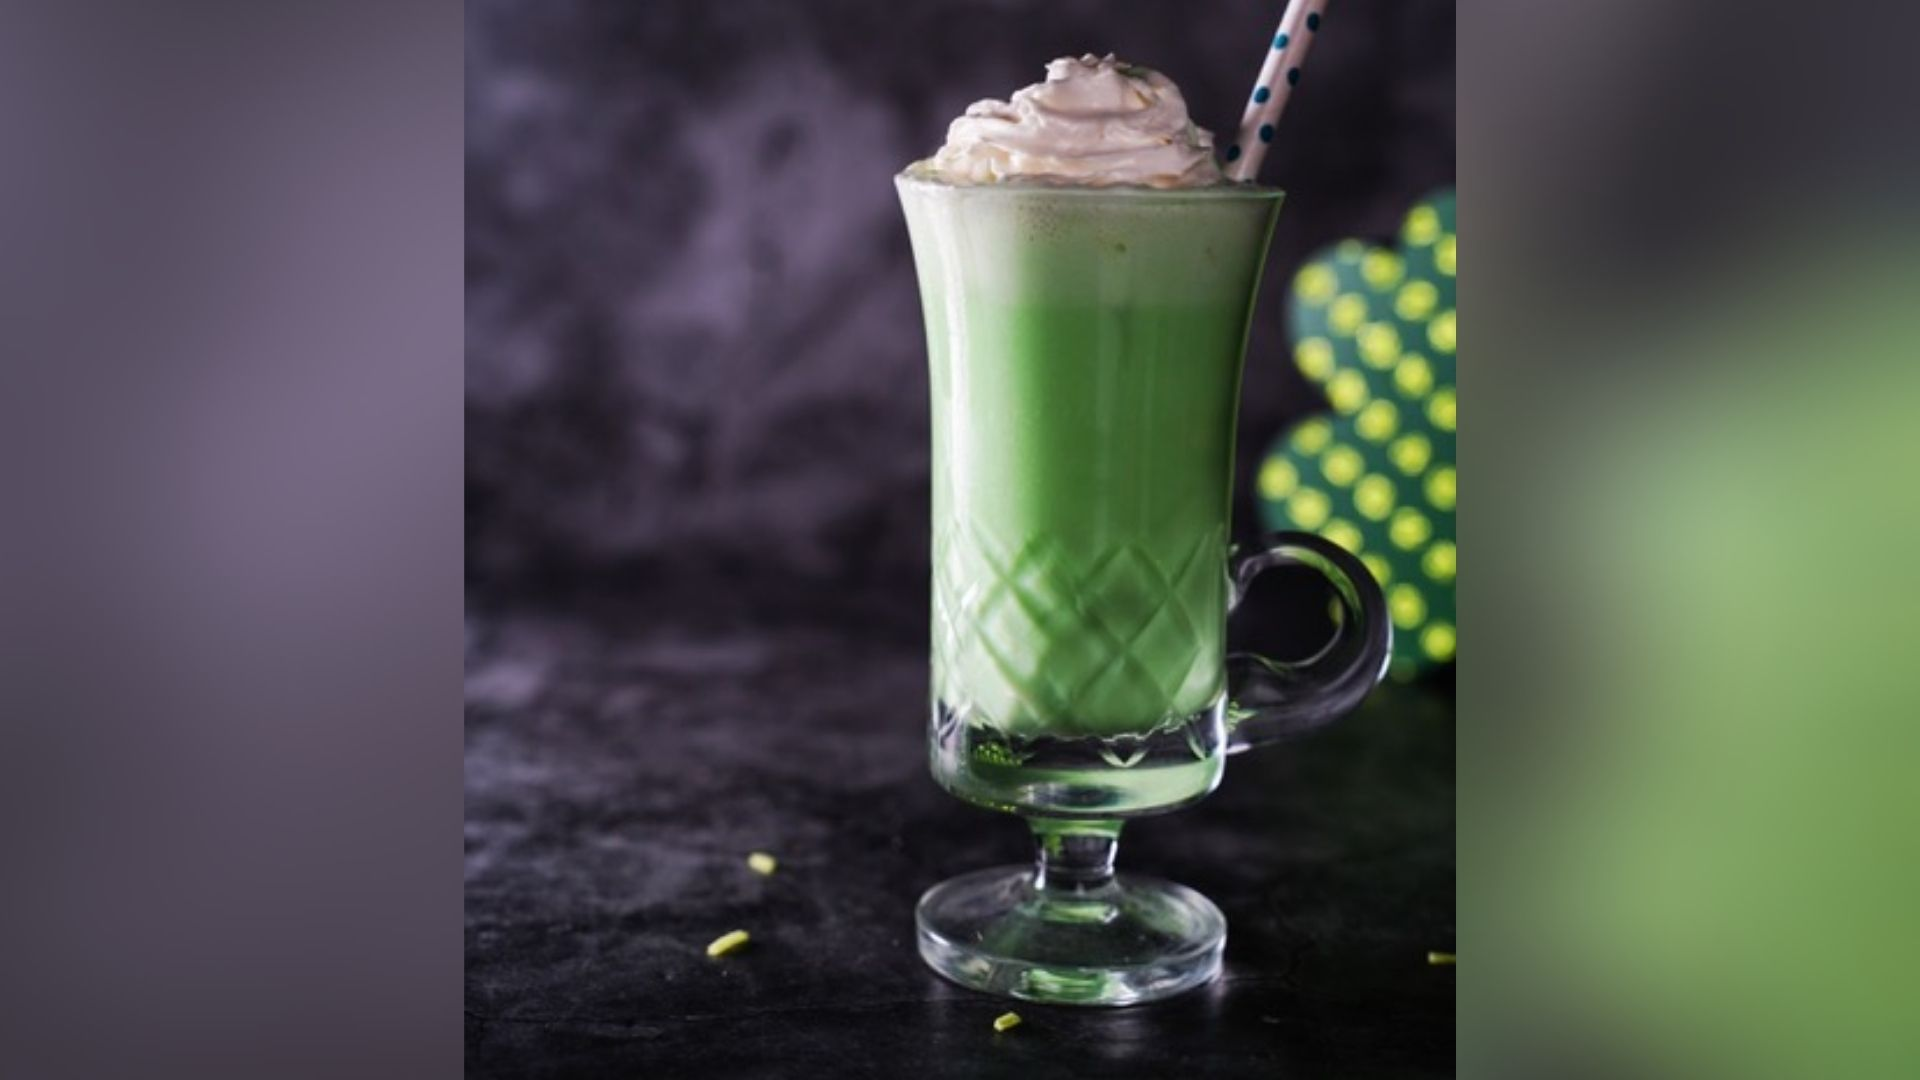 Mocha mint shamrock shake picture courtesy of Lauren Lane.